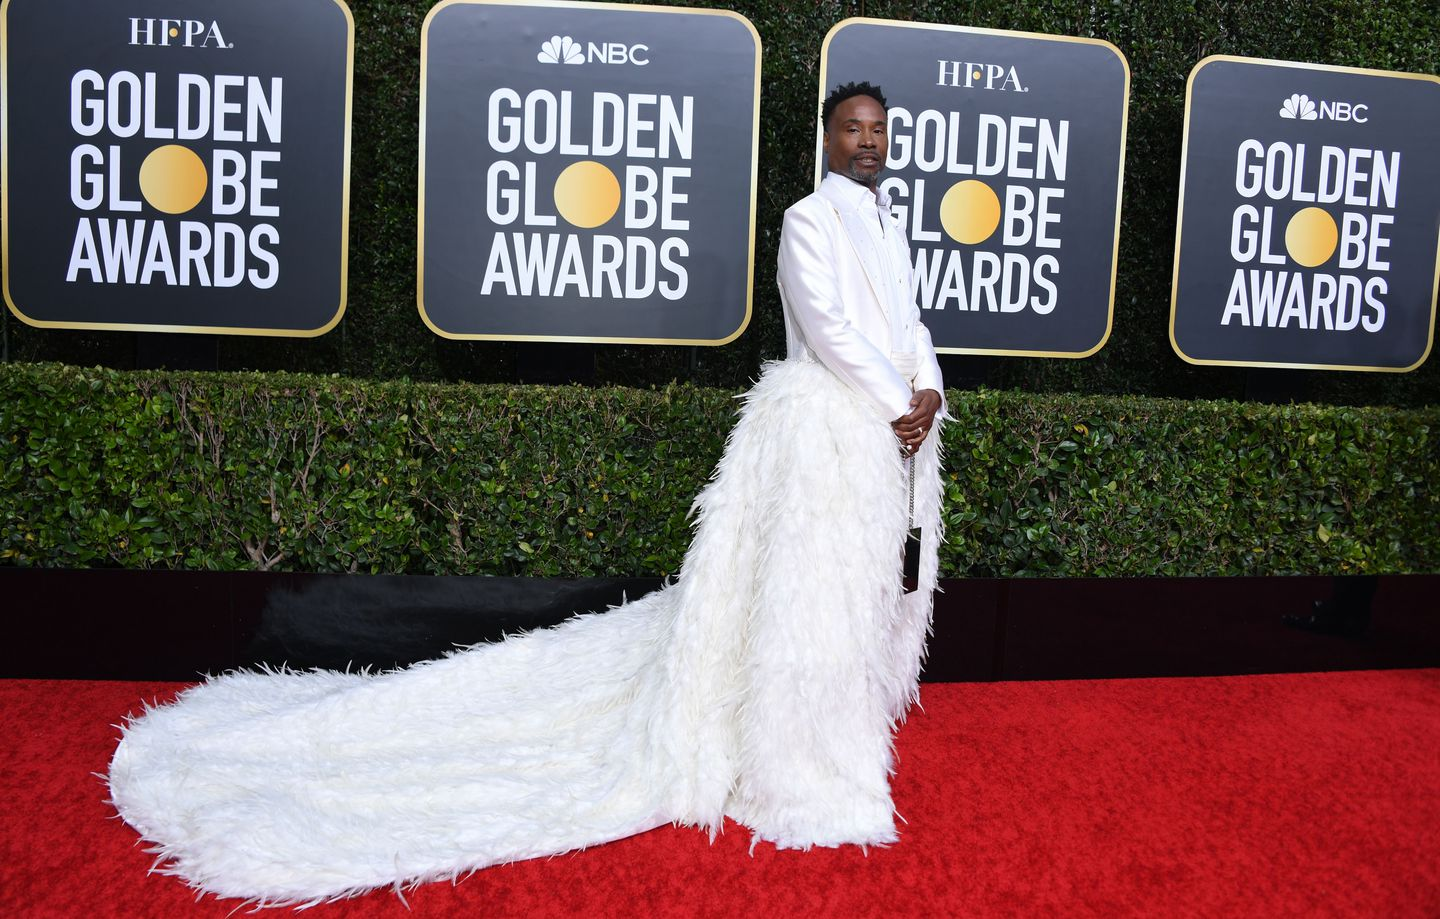 Hits And Misses From The Golden Globes Red Carpet The Boston Globe